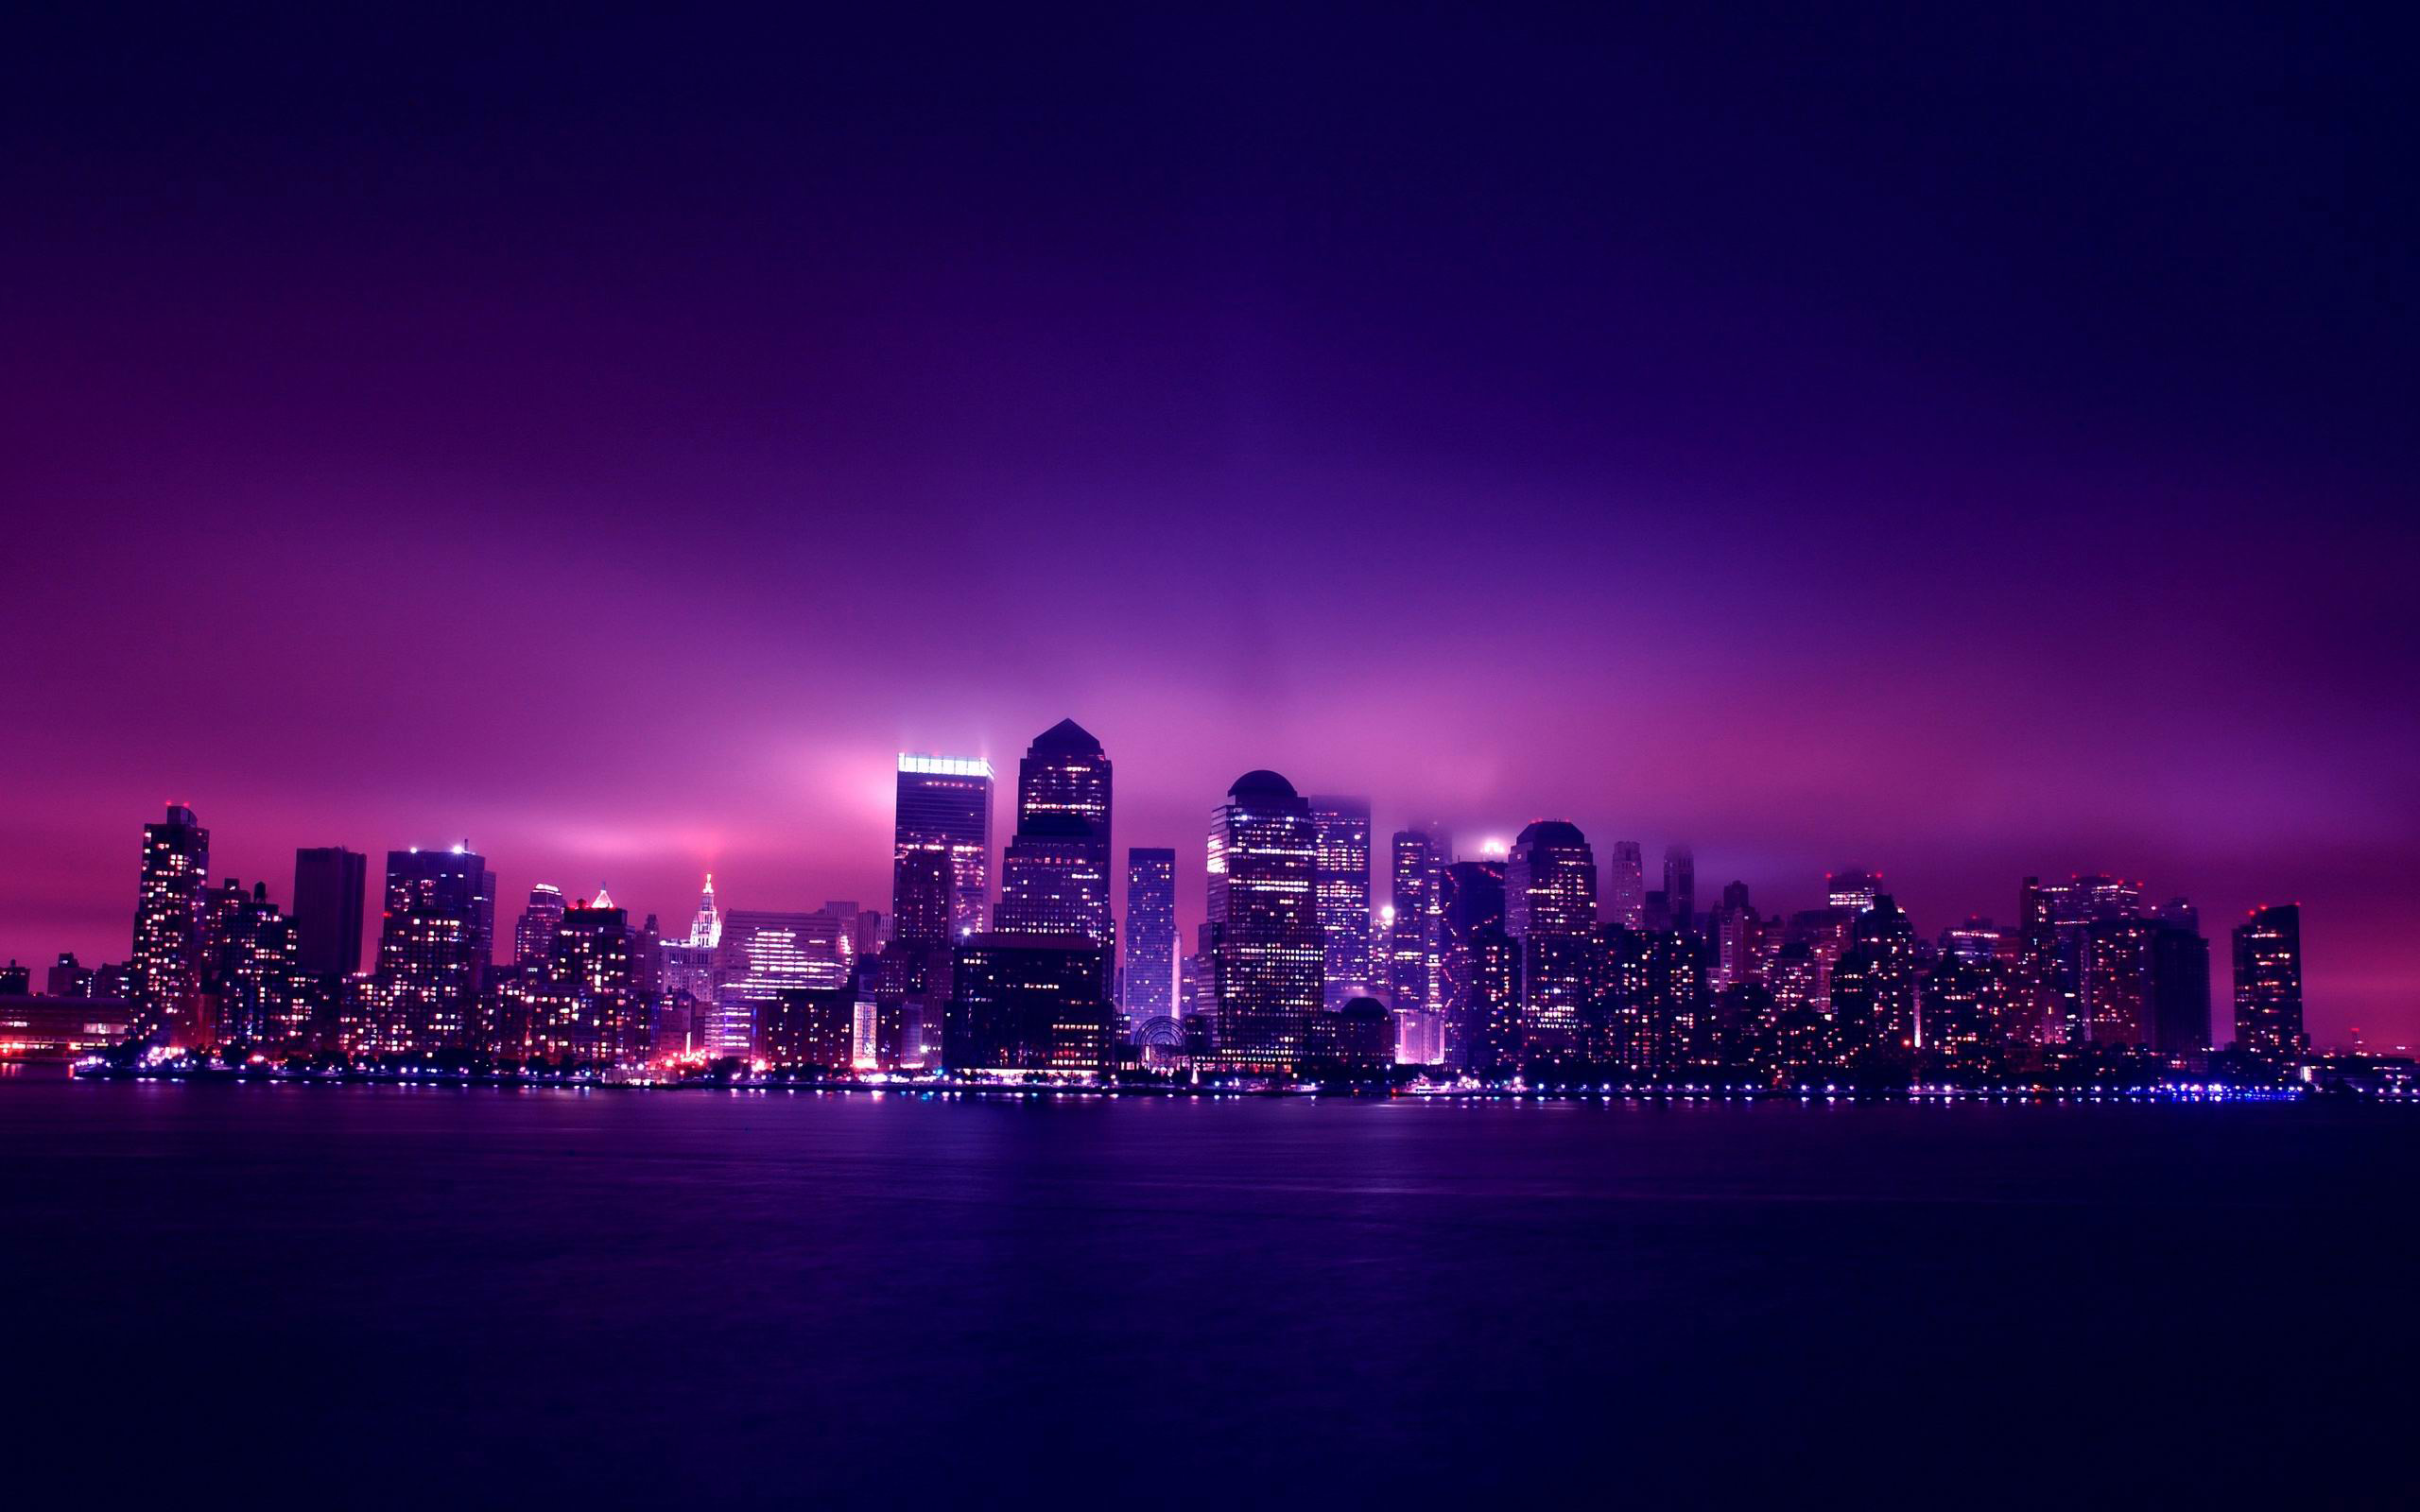 City Skyline Wallpaper 17